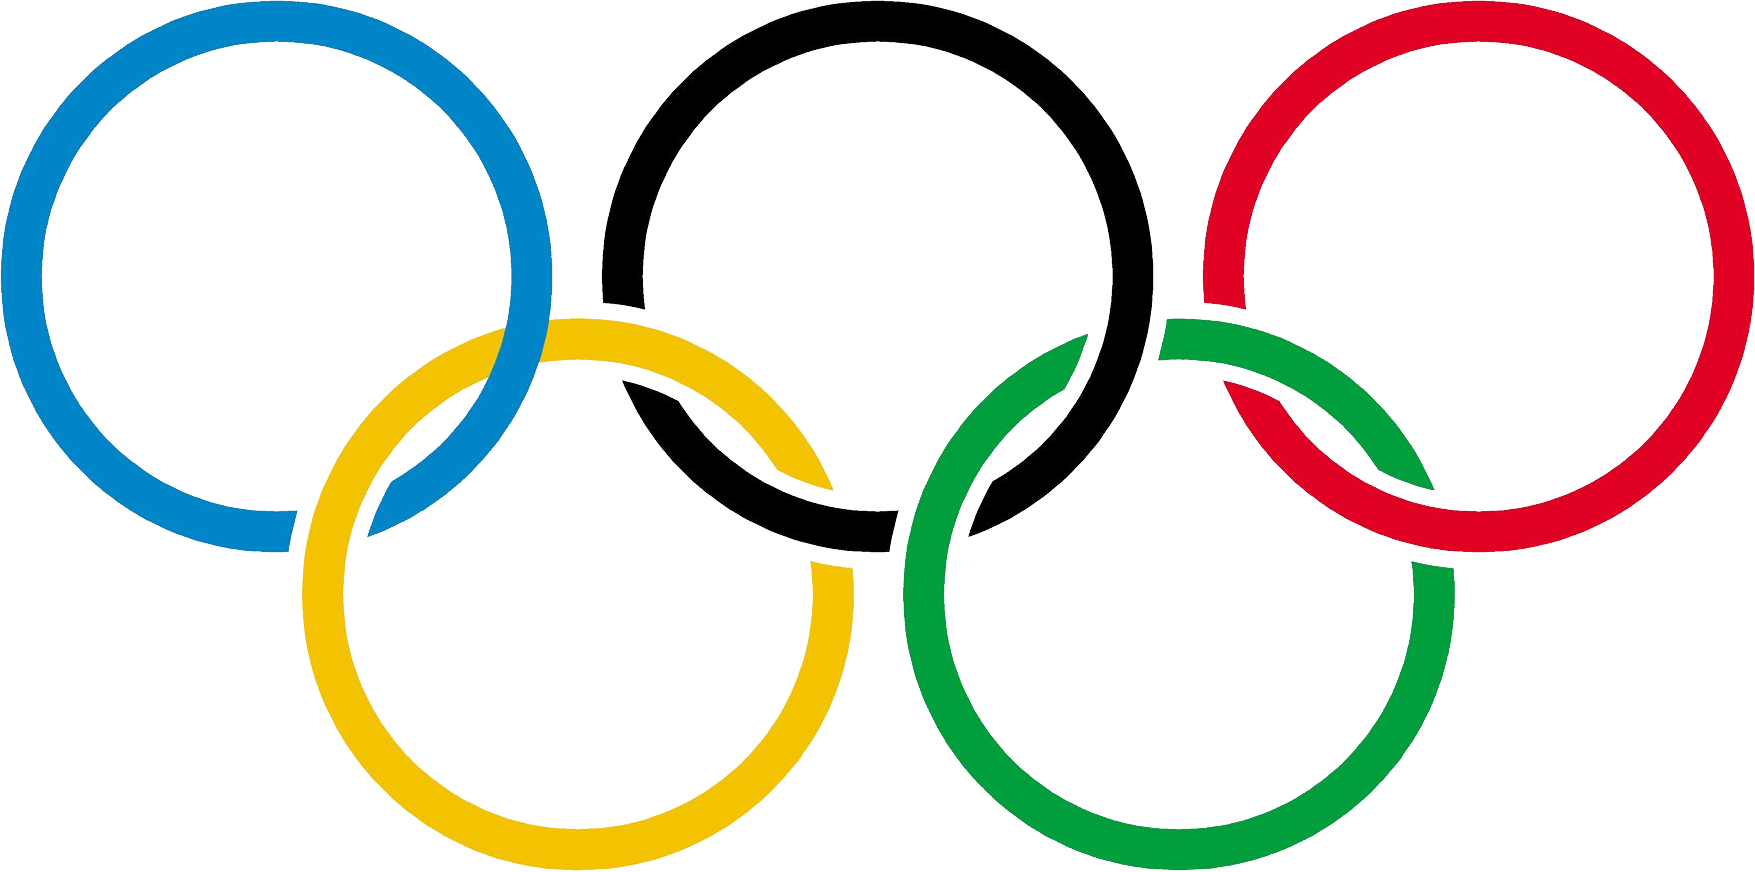 Olympic rings PNG images free download.